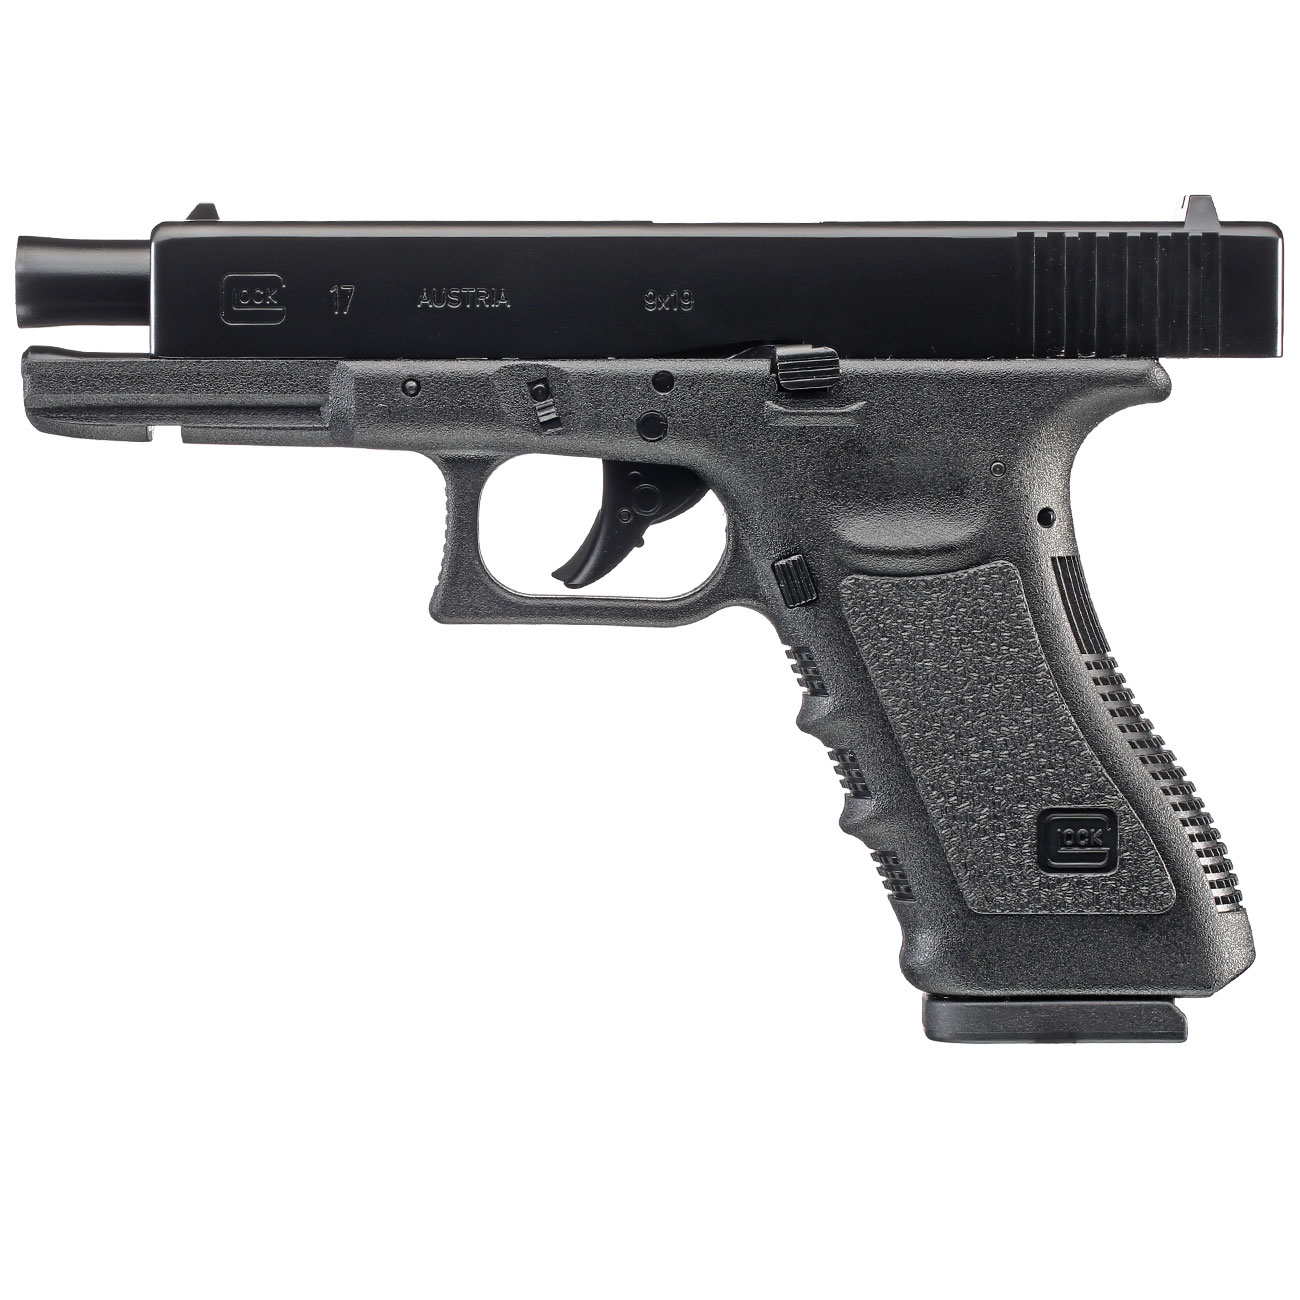 Glock 17 CO2 Luftpistole Kal. 4,5 mm BB 1